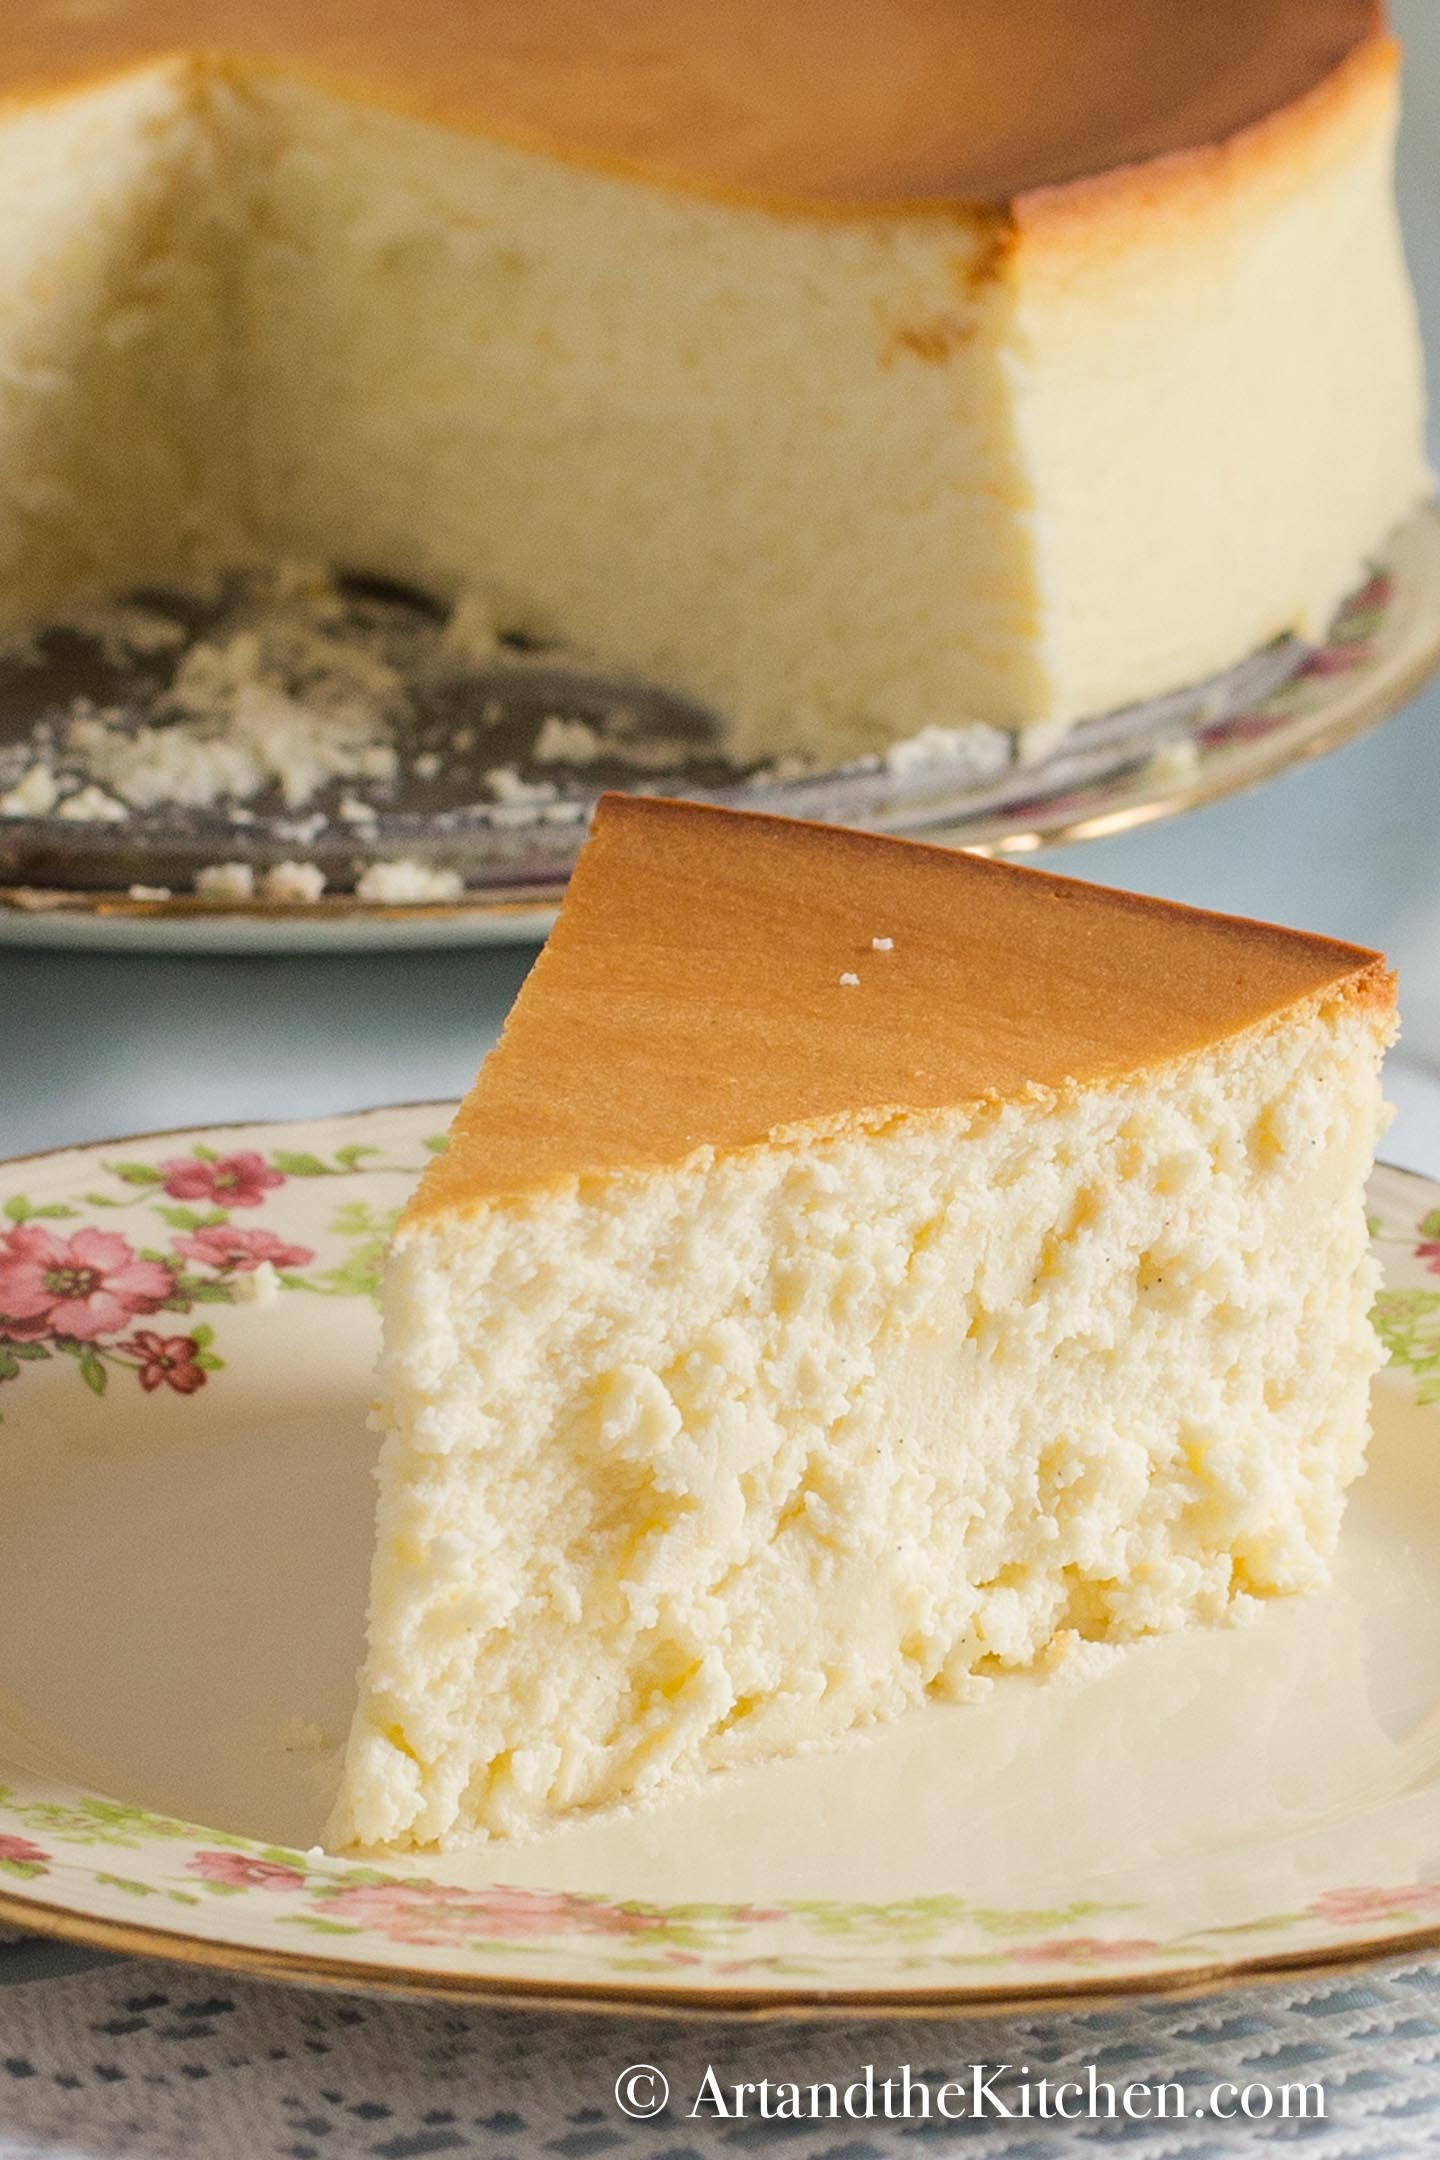 Slice of plain crustless cheesecake on decorative plate with whole cheesecake in background.